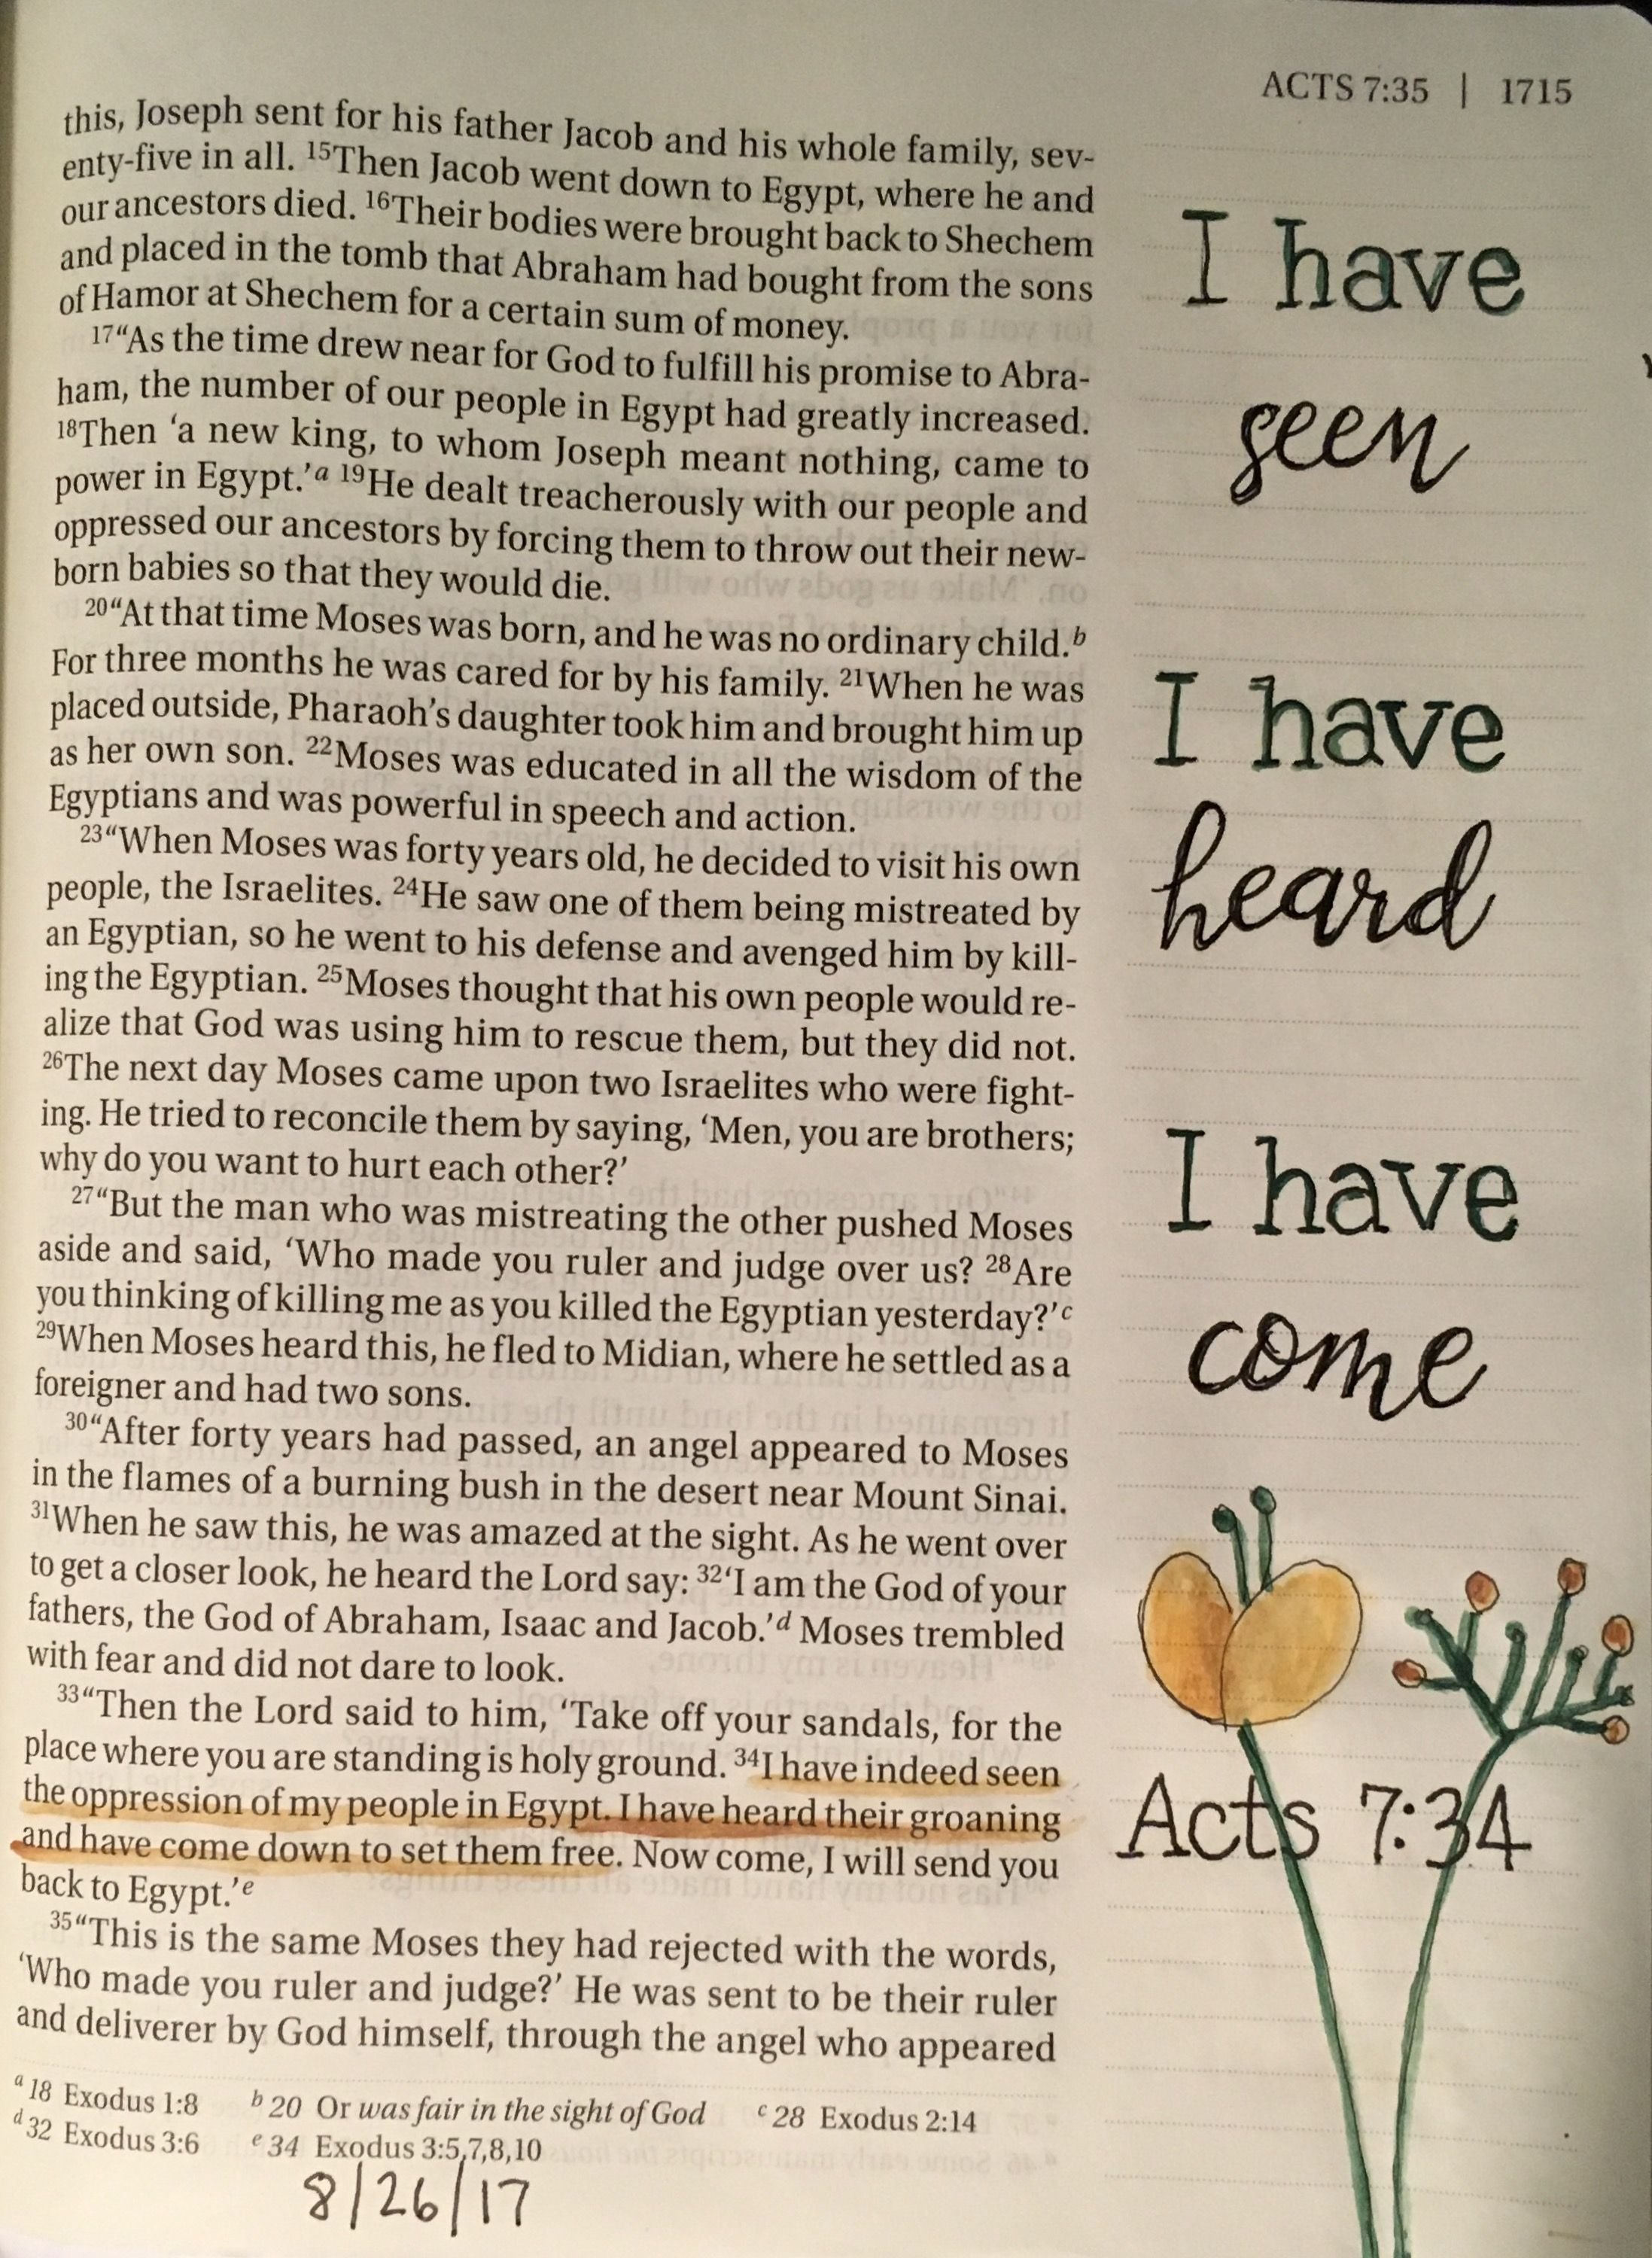 Continuing With My Artistic Theme In Acts Here Is Acts724 Stephen Recounting All That God Had Done For Israel I HAVE Indeed SEEN The Oppression Of